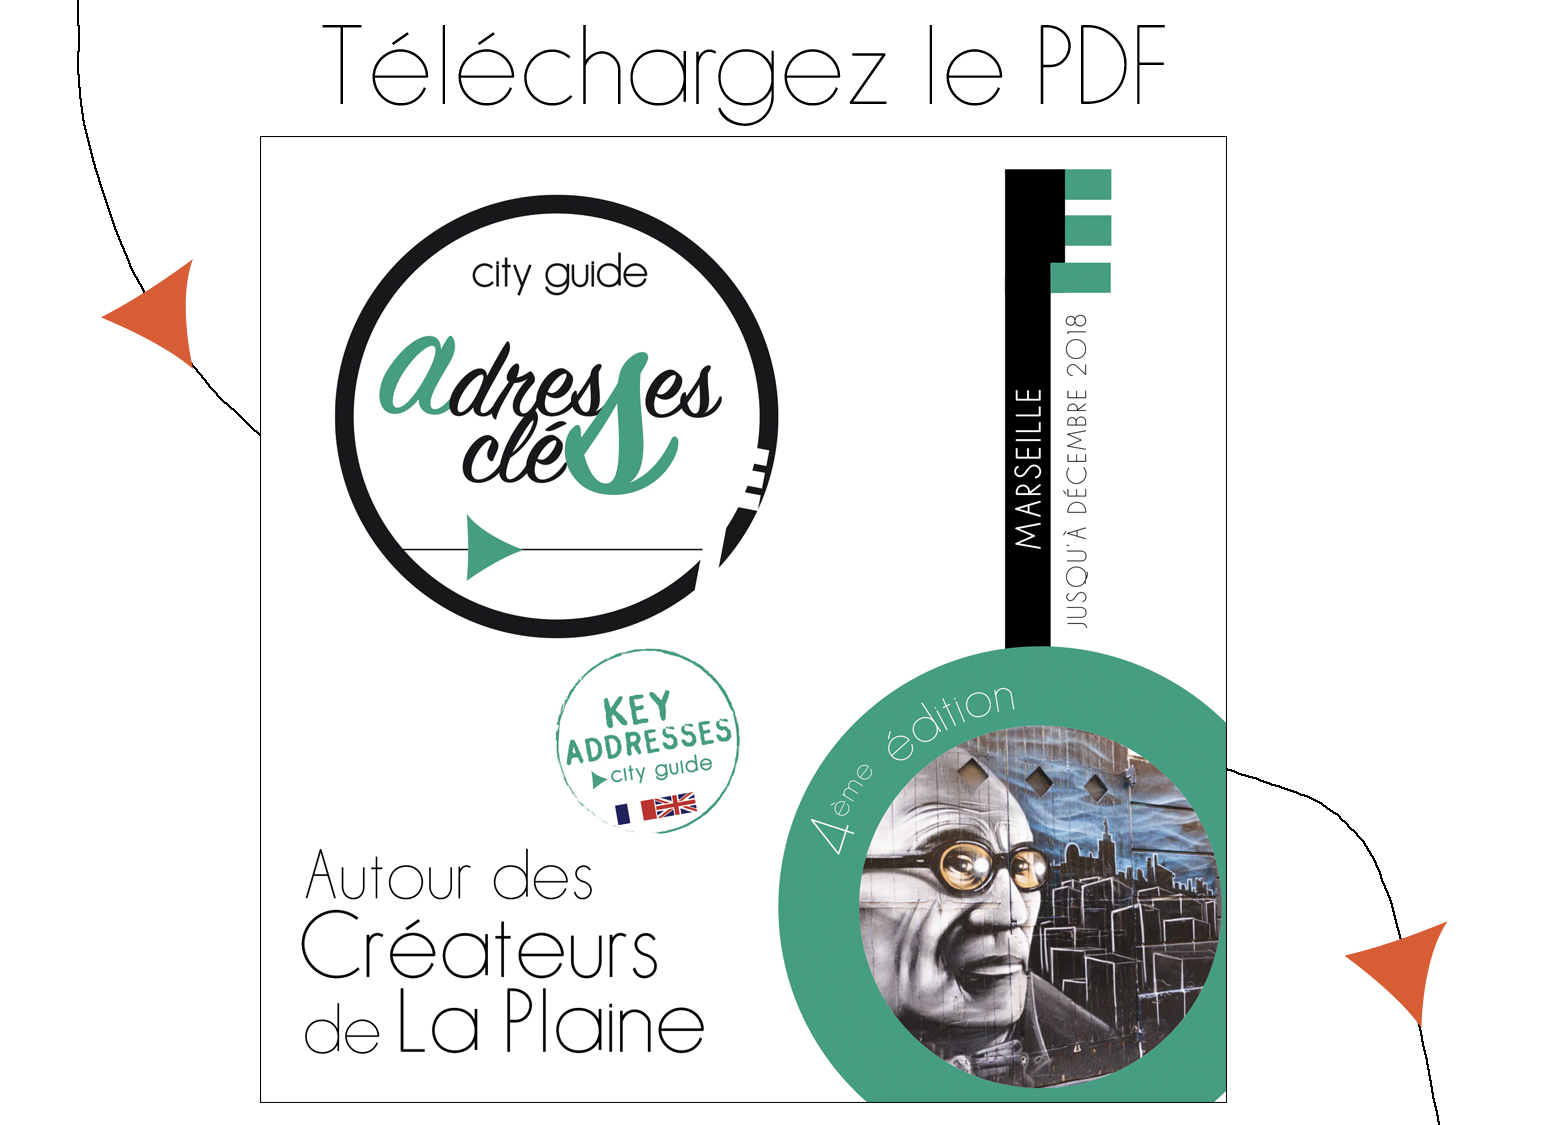 City guide Adresses Clés de La Plaine